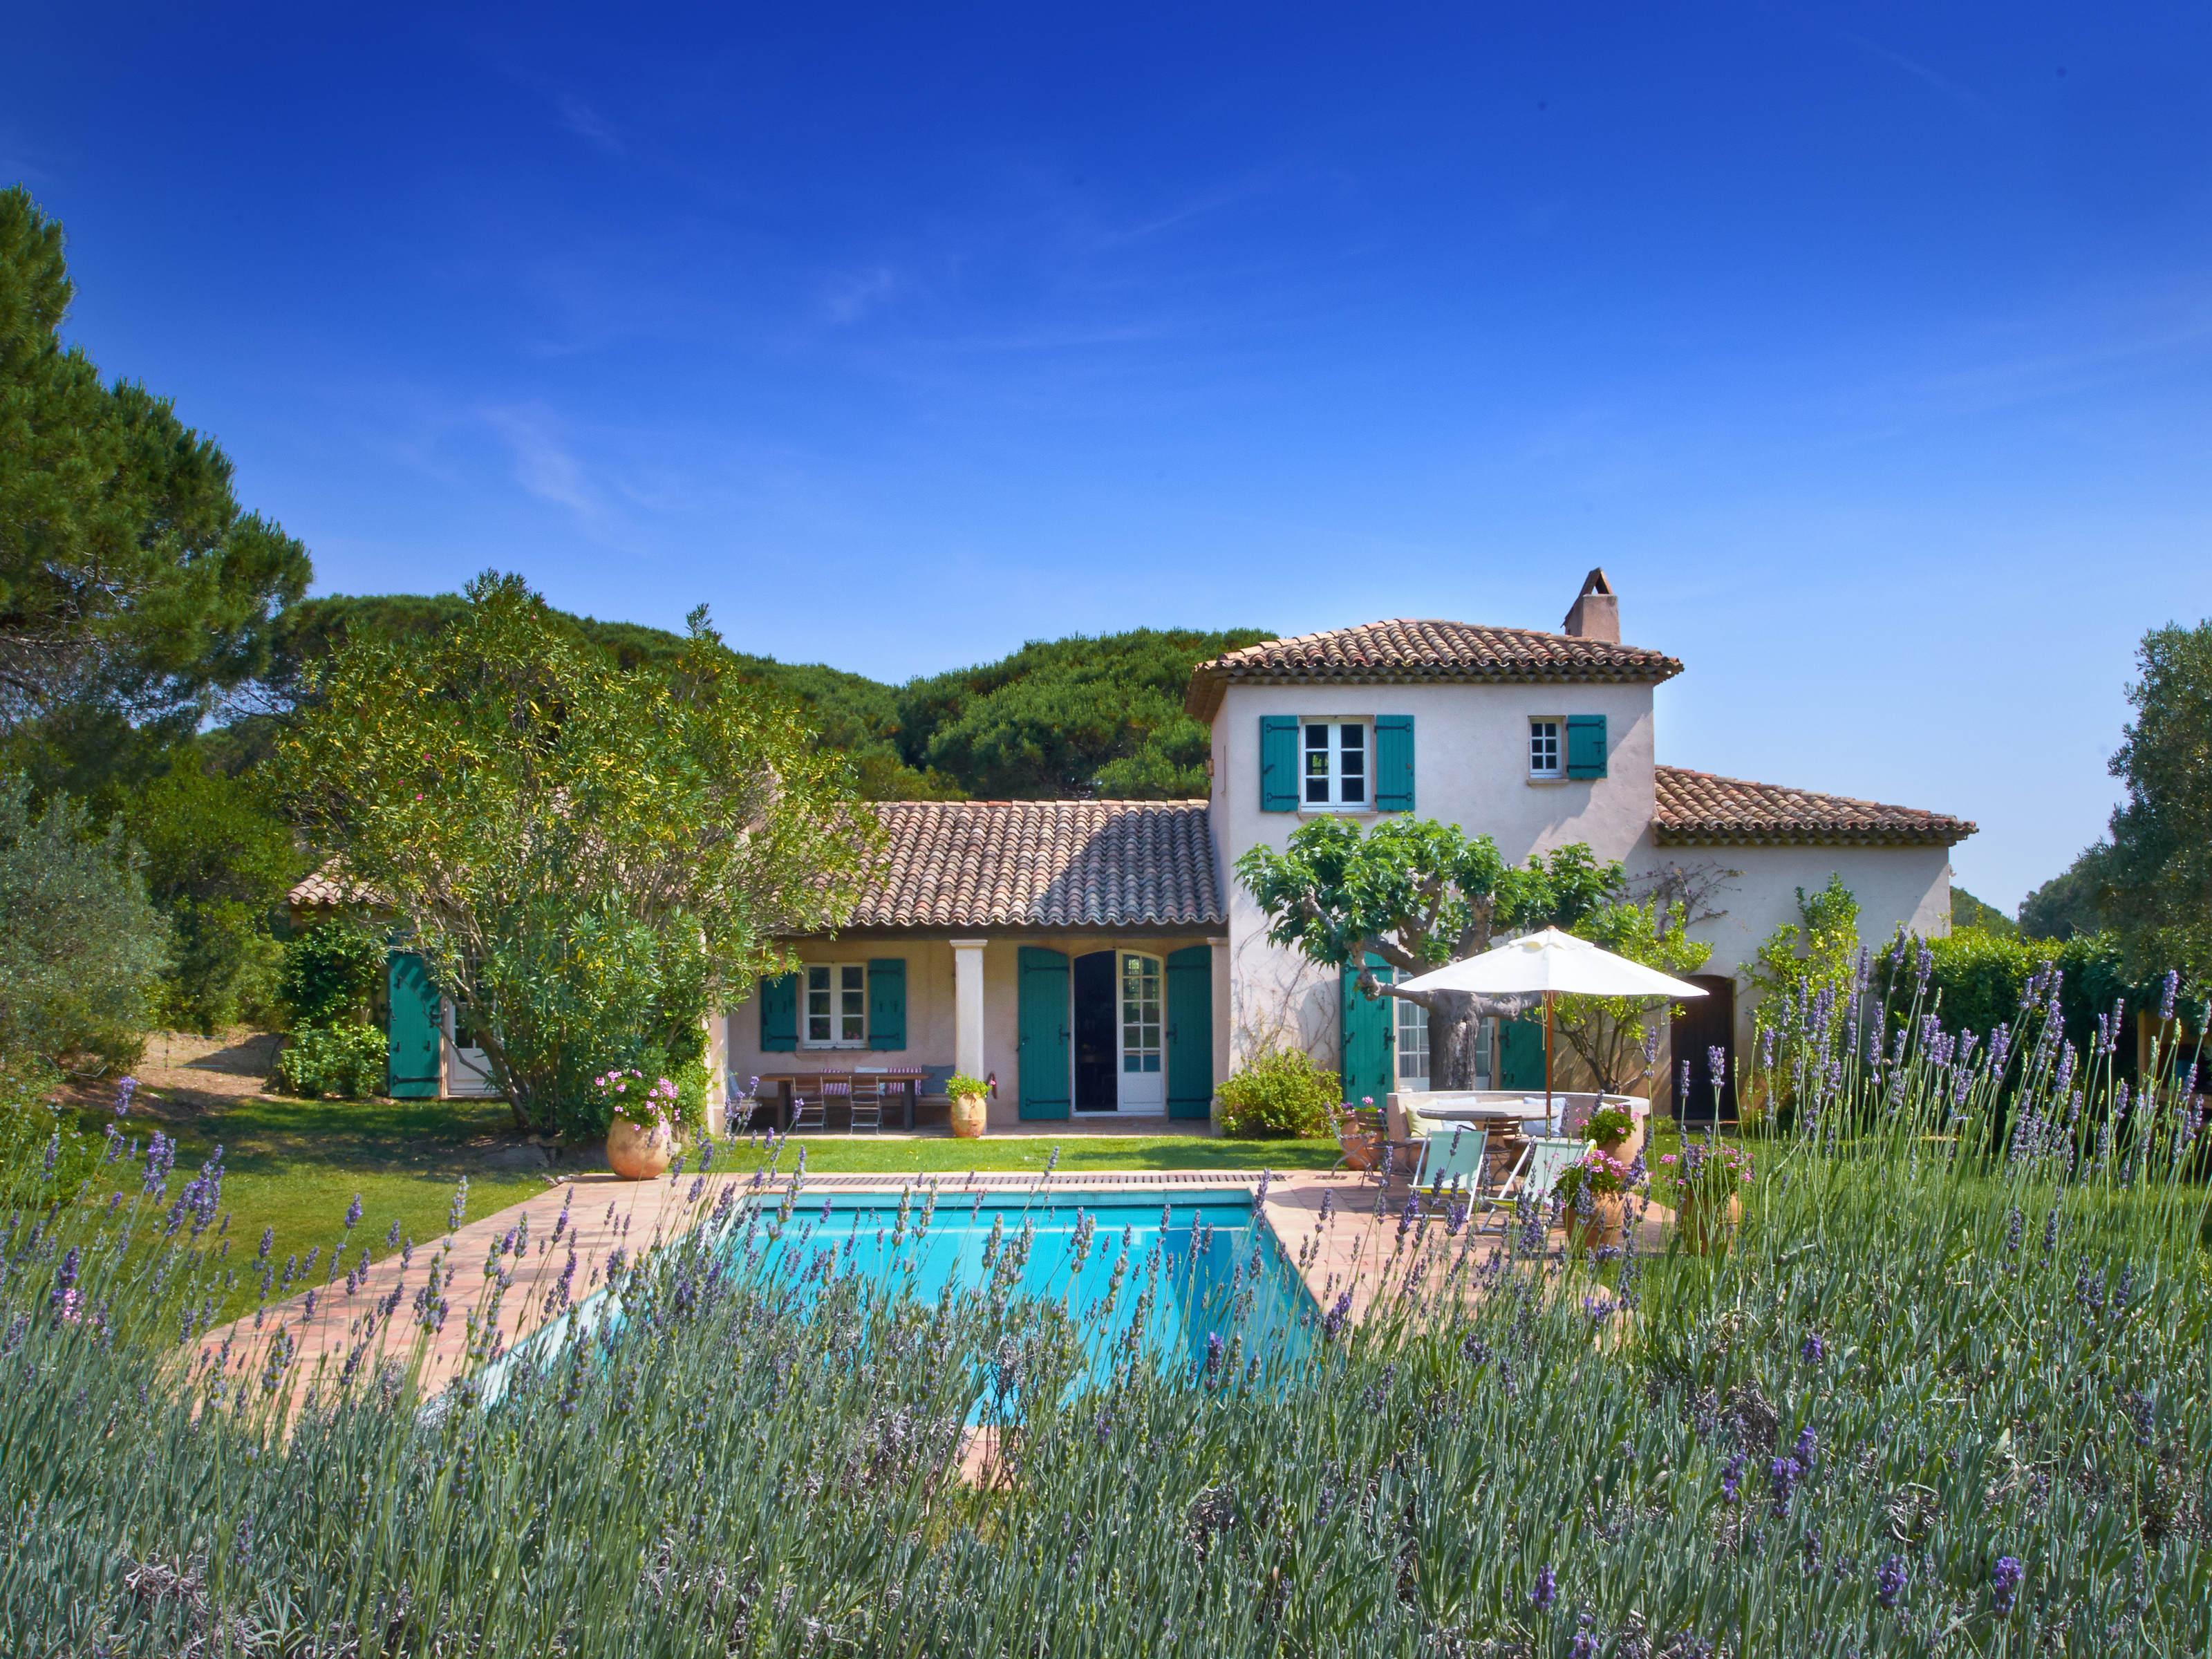 Single Family Home for Sale at Charming provencal style property in Ramatuelle Ramatuelle, Provence-Alpes-Cote D'Azur 83350 France